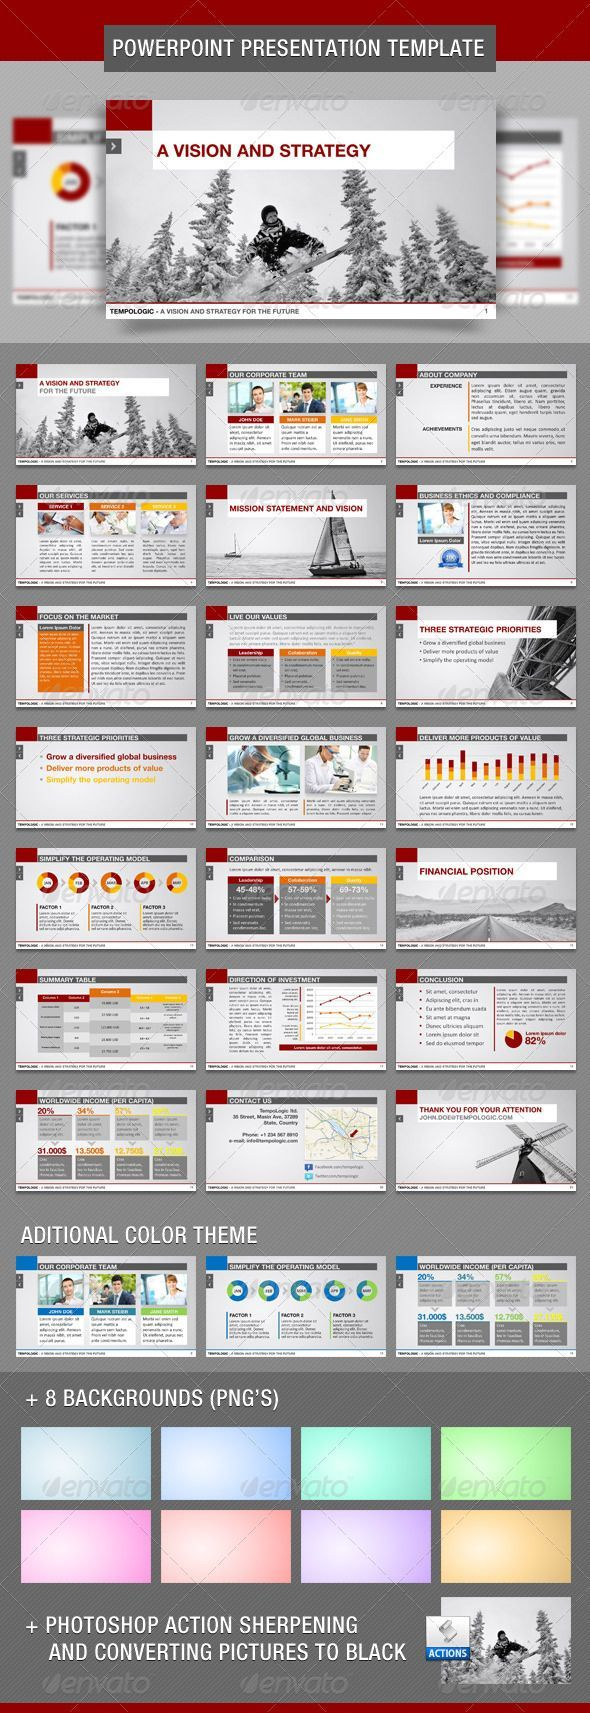 Download Free PowerPoint Themes amp PPT Templates